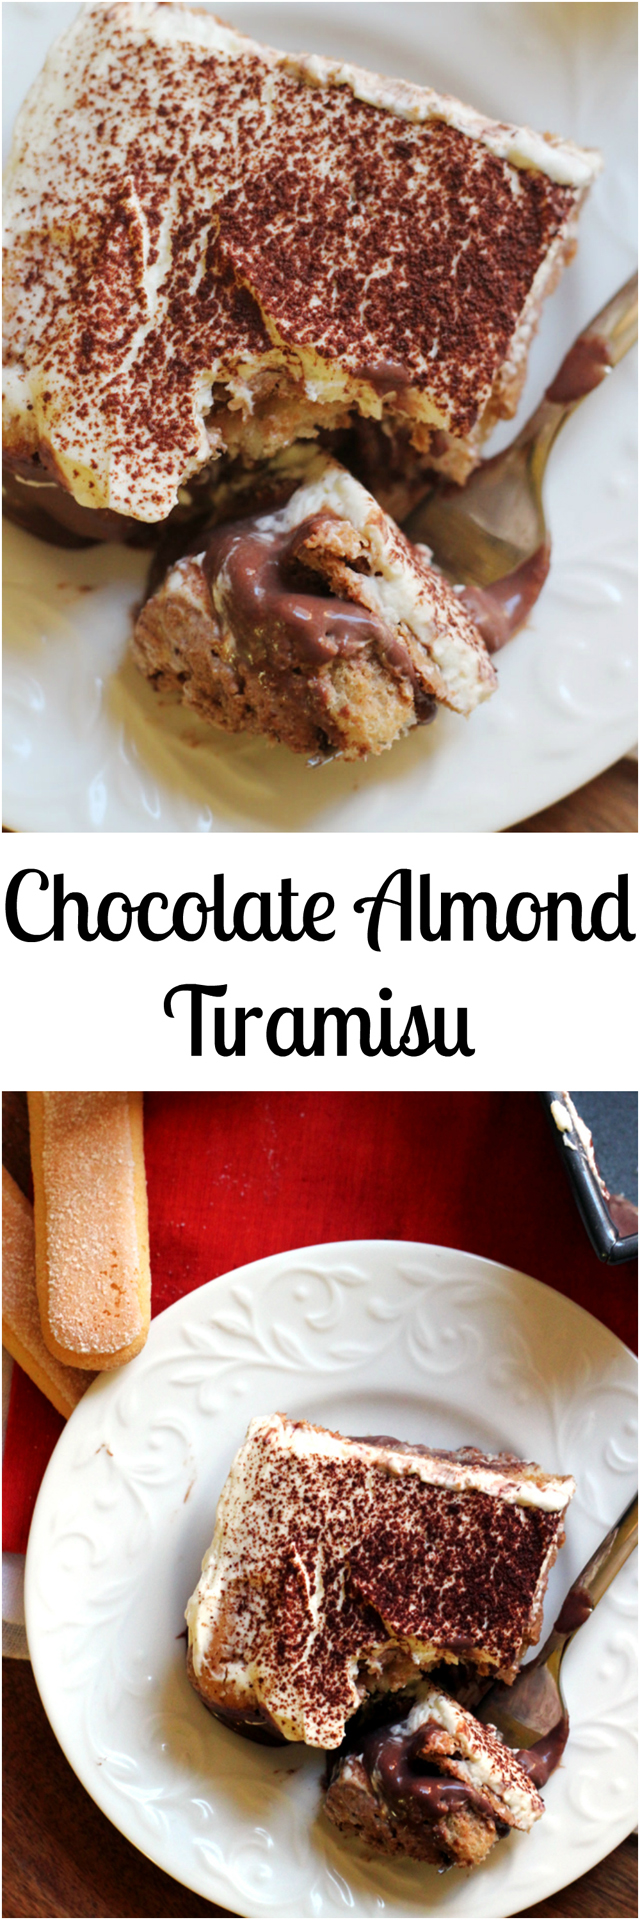 chocolate almond tiramisu